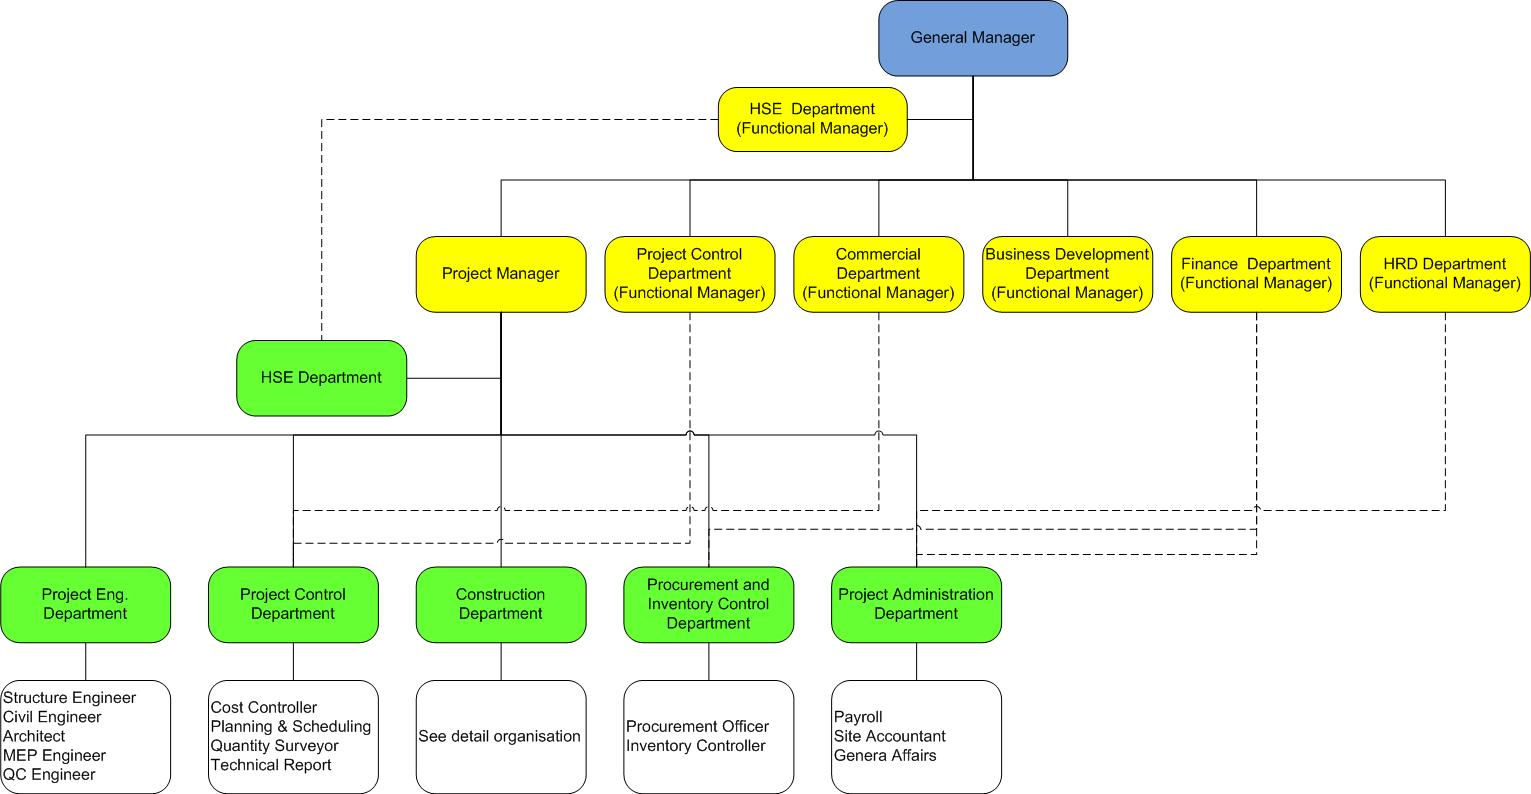 project management office structure diagram rj11 jack wiring rquzwainaace casablanca q1 2012 aace